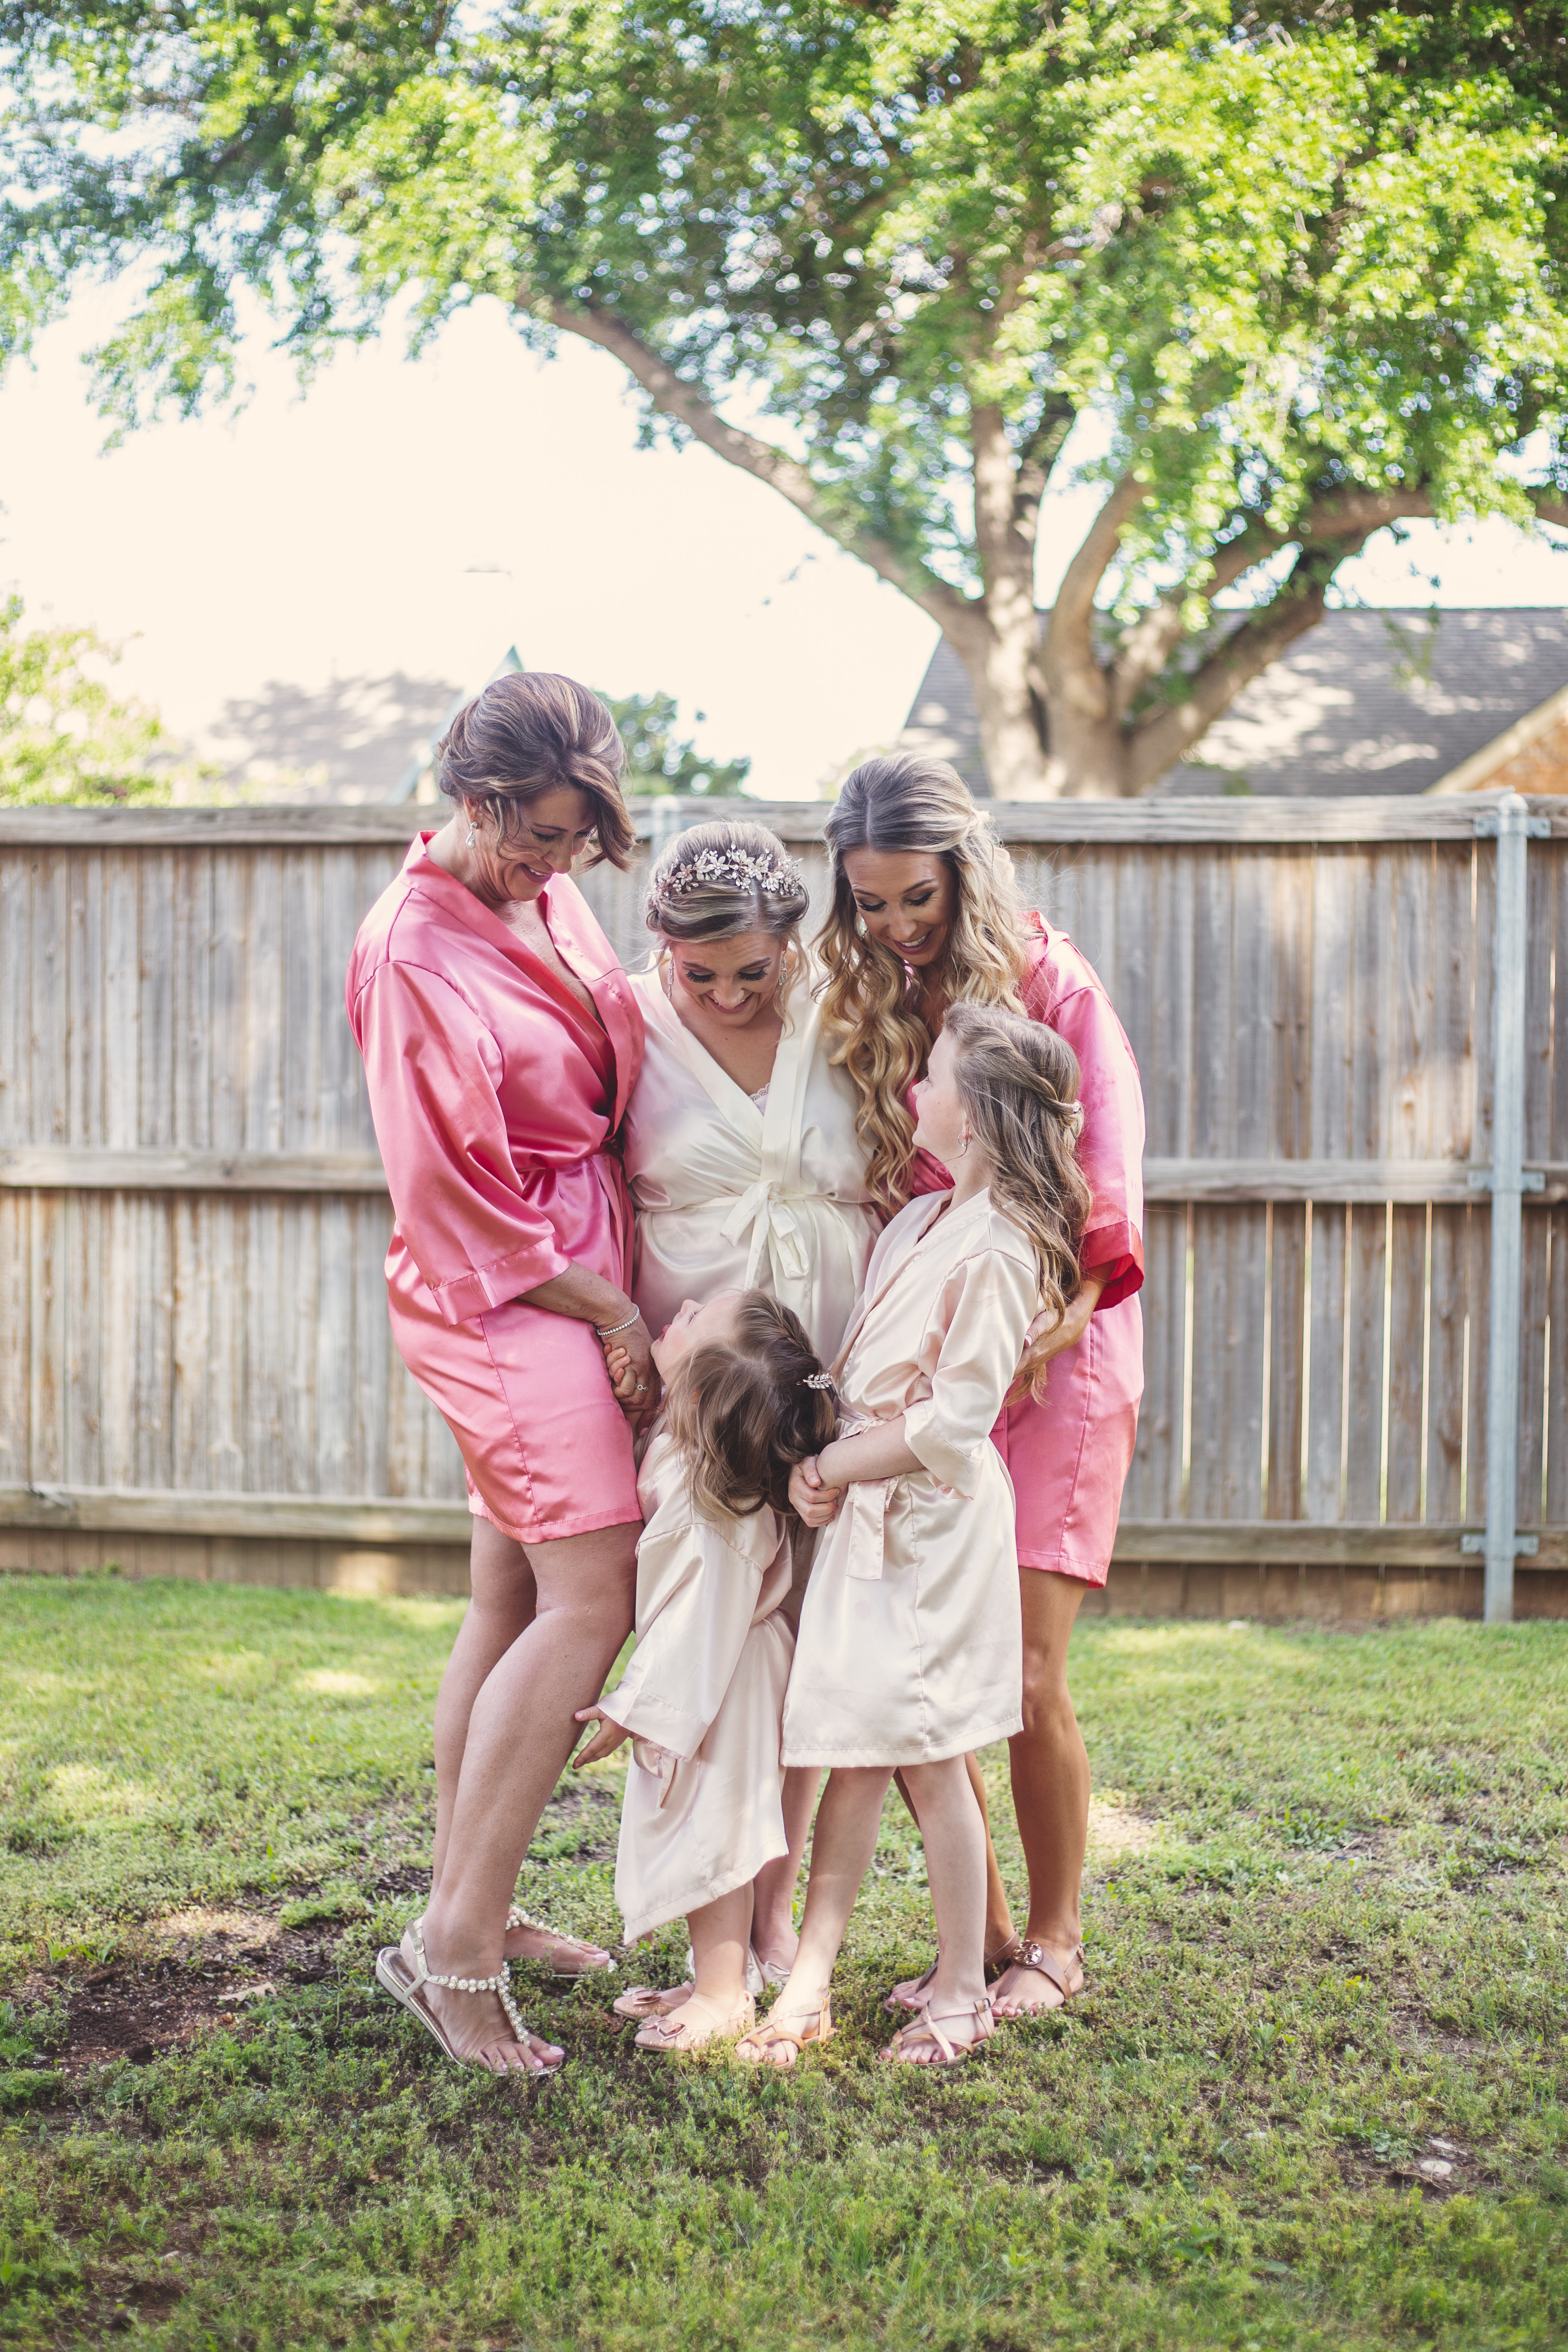 Bridesmaids photos in Lewisville Texas | Skys the Limit Production - Wedding Photographer